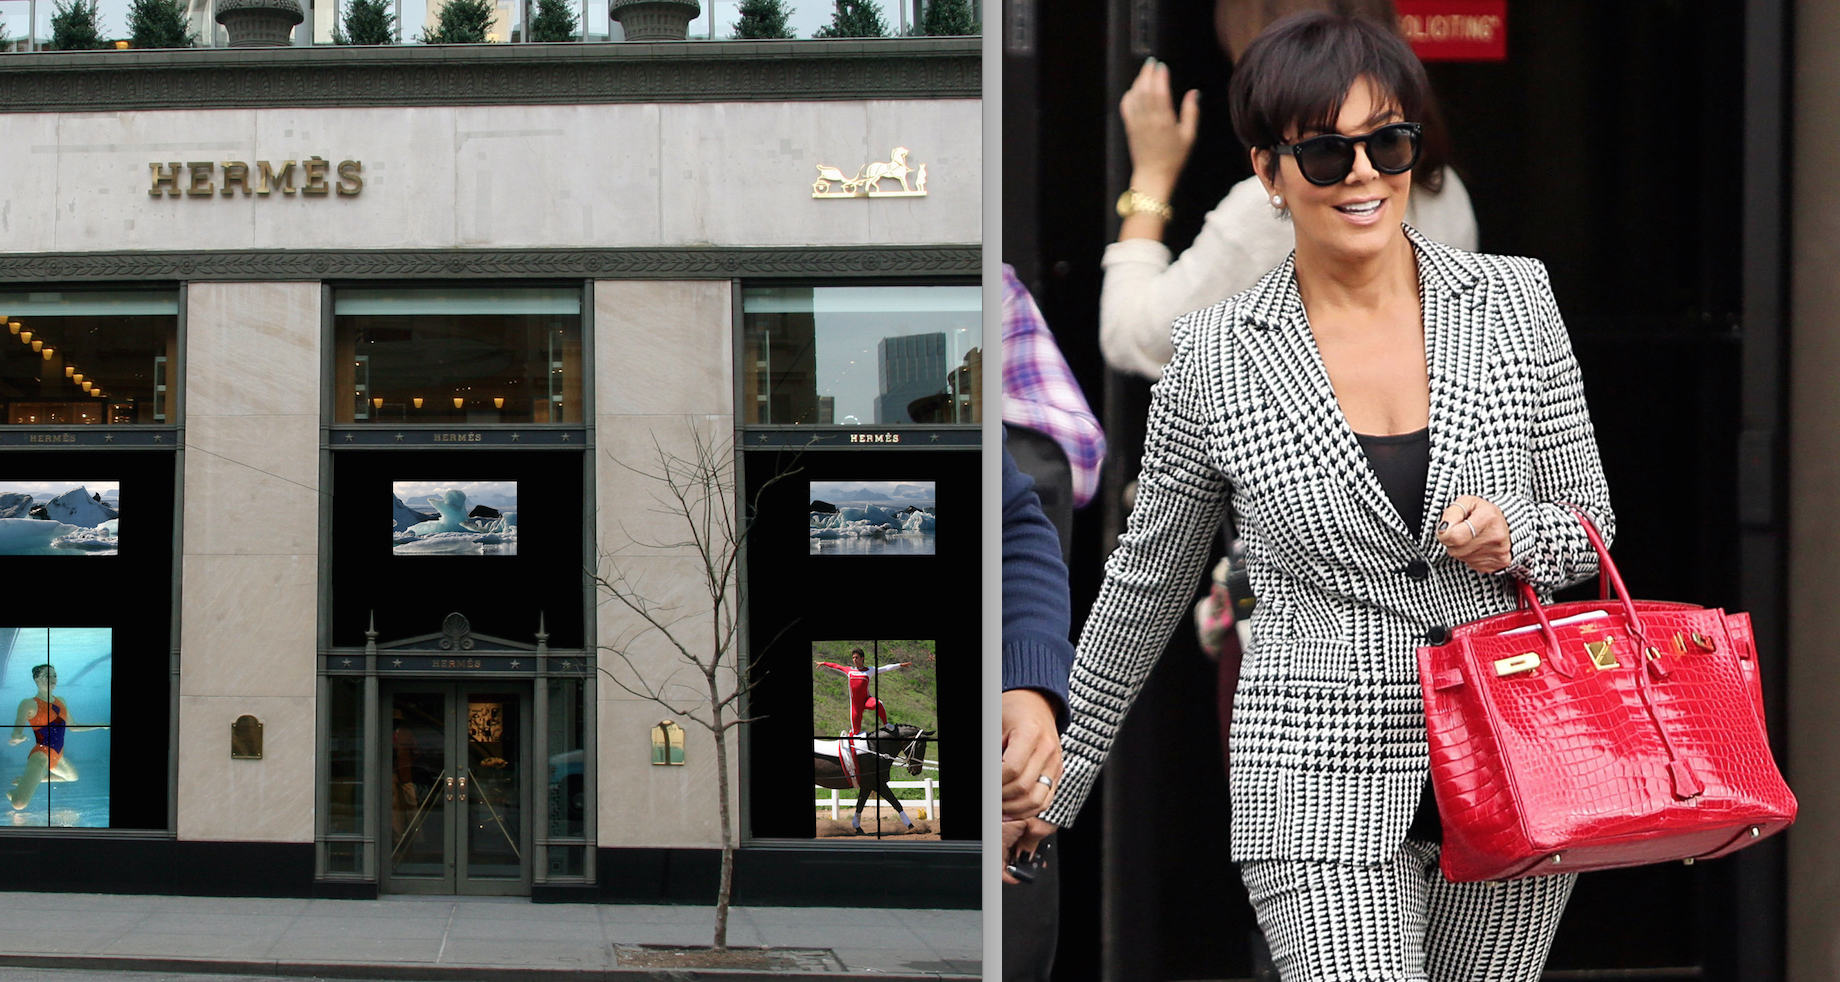 Undercover investigators expose atrocities on alligator farms that reality star kris jenner wears herms purse made from alligator skin photo purseblog buycottarizona Image collections